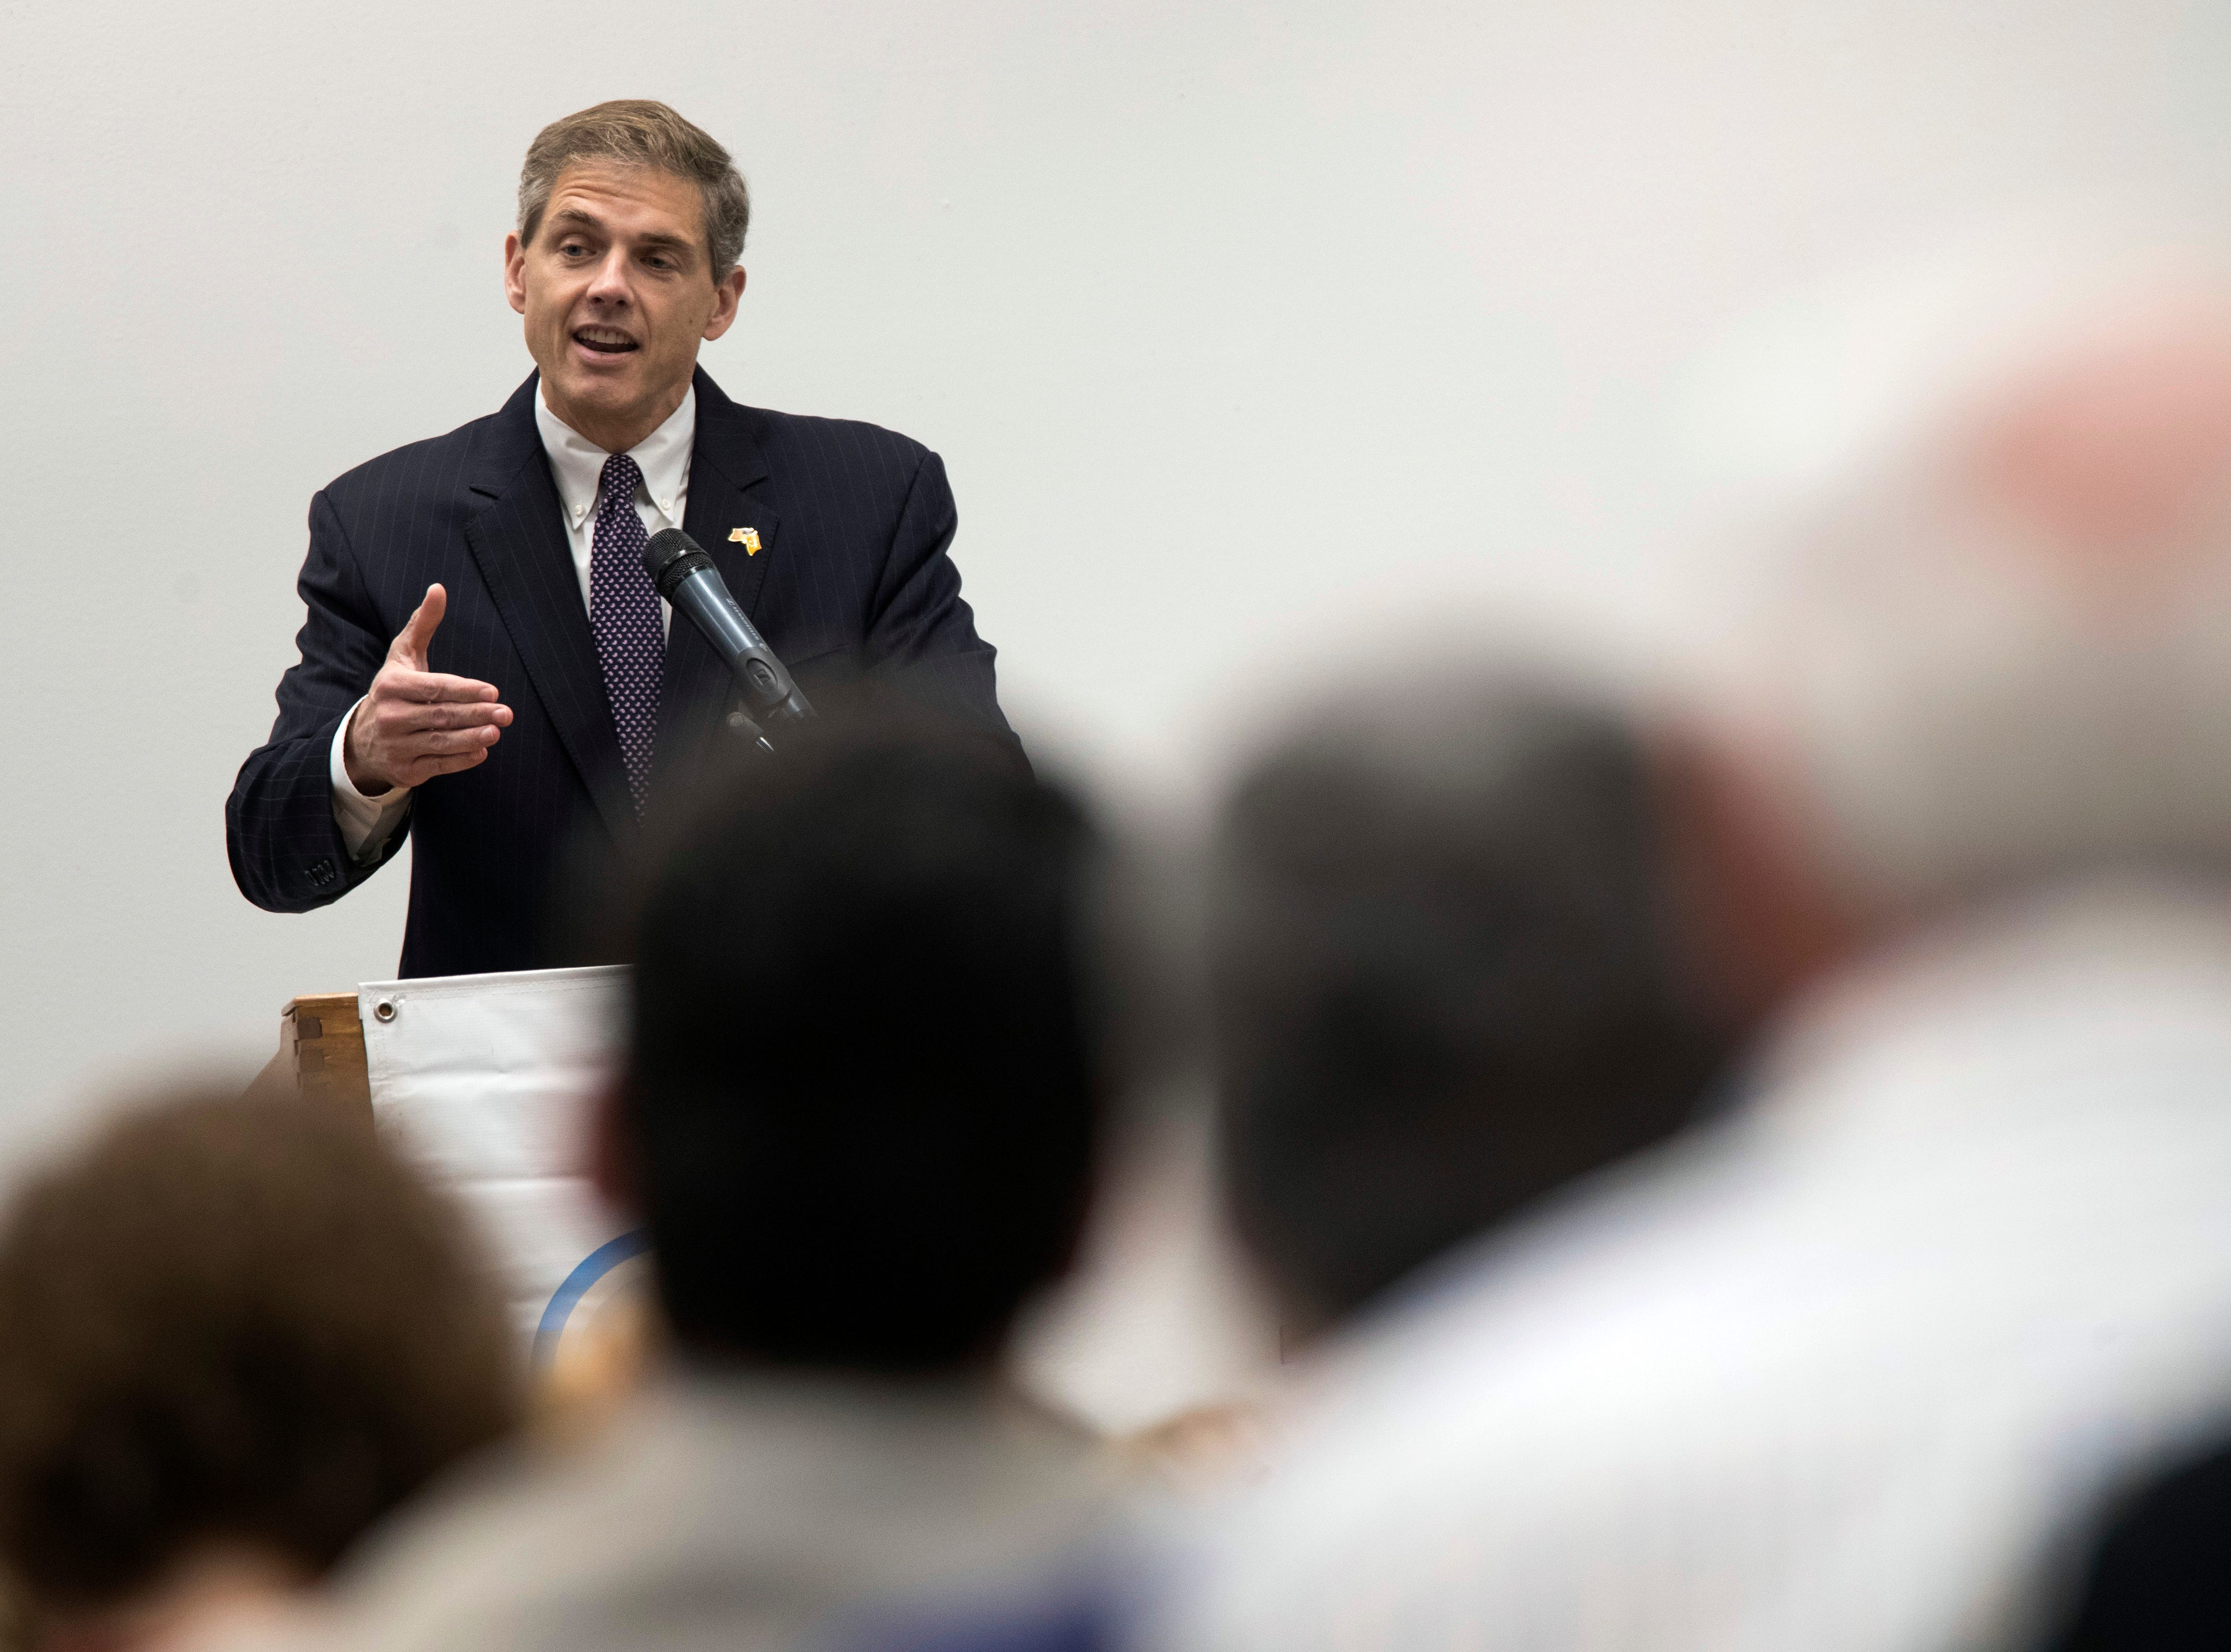 Republican Assemblyman Jay Webber speaks during a candidate forum at the UJC of MetroWest New Jersey, Tuesday, Oct. 9, 2018, in Whippany, N.J. (AP Photo/Mary Altaffer)